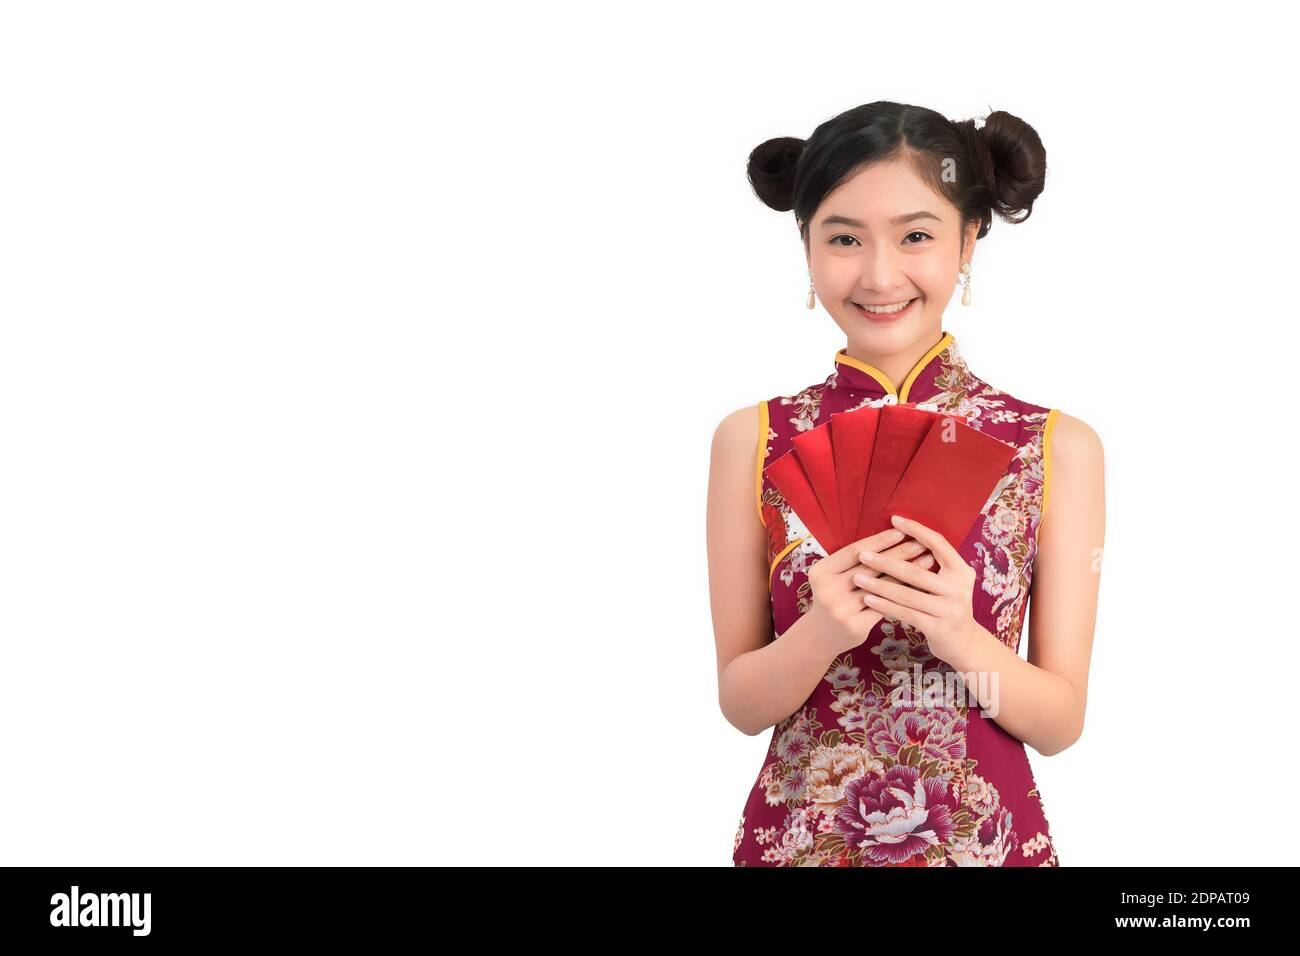 Portrait Of Beautiful Woman Wearing Chinese Dress Holding Envelopes Against White Background Stock Photo